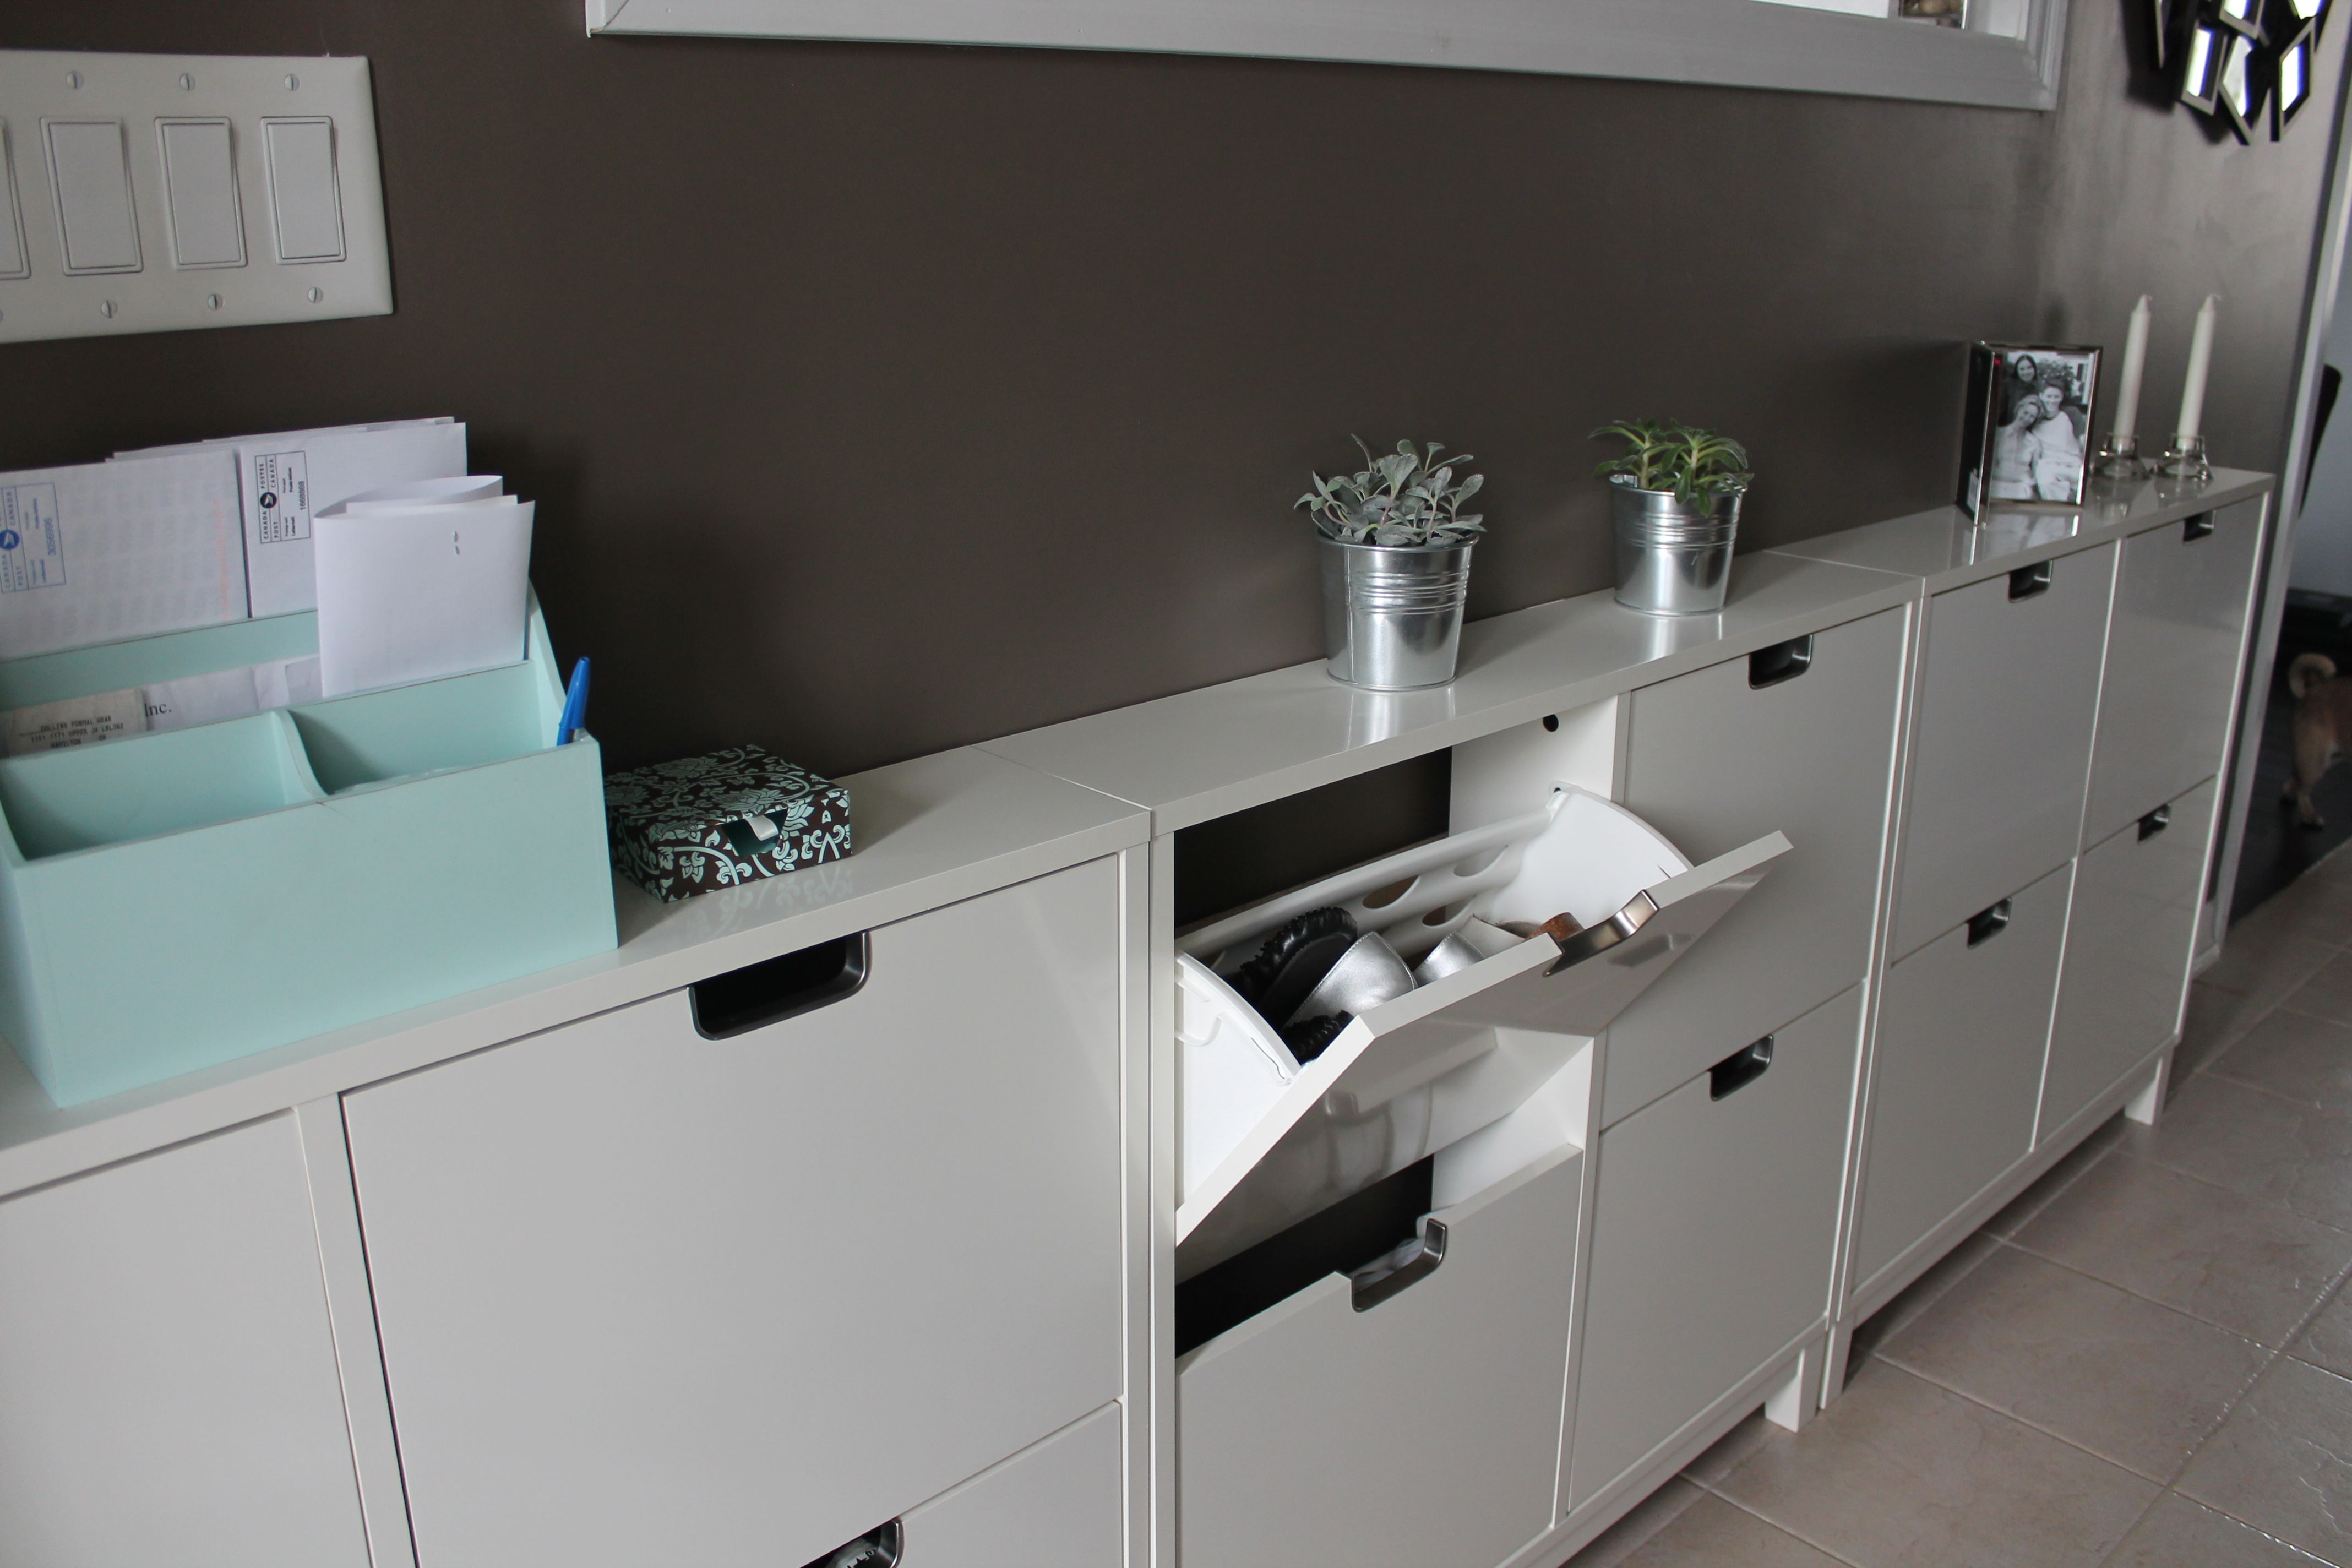 Ikea Stall Shoe Cabinet Keeps Shoes Tucked Away Neat And Tidy